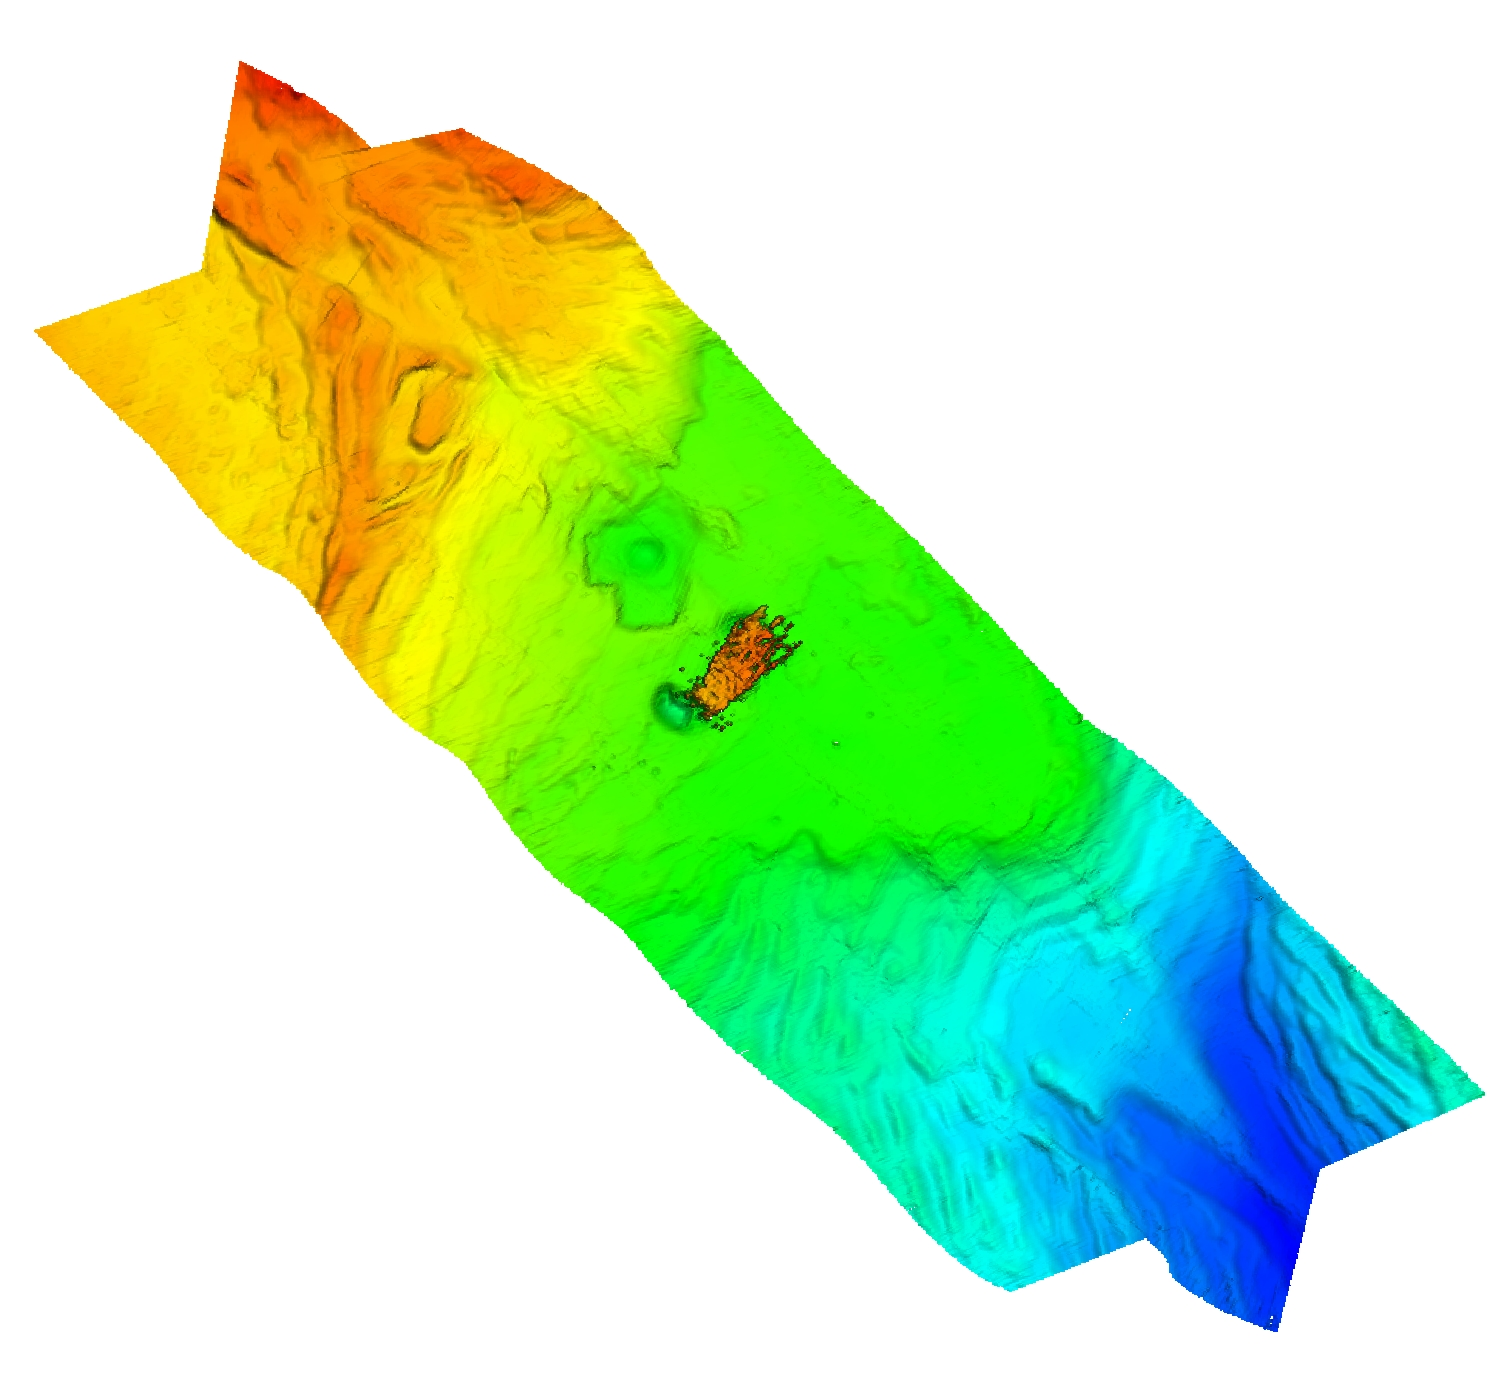 Thumbnail image of 2-m multibeam echosounder bathymetry data collected at the MC20 site on the Mississippi River Delta front offshore of southeastern Louisiana.